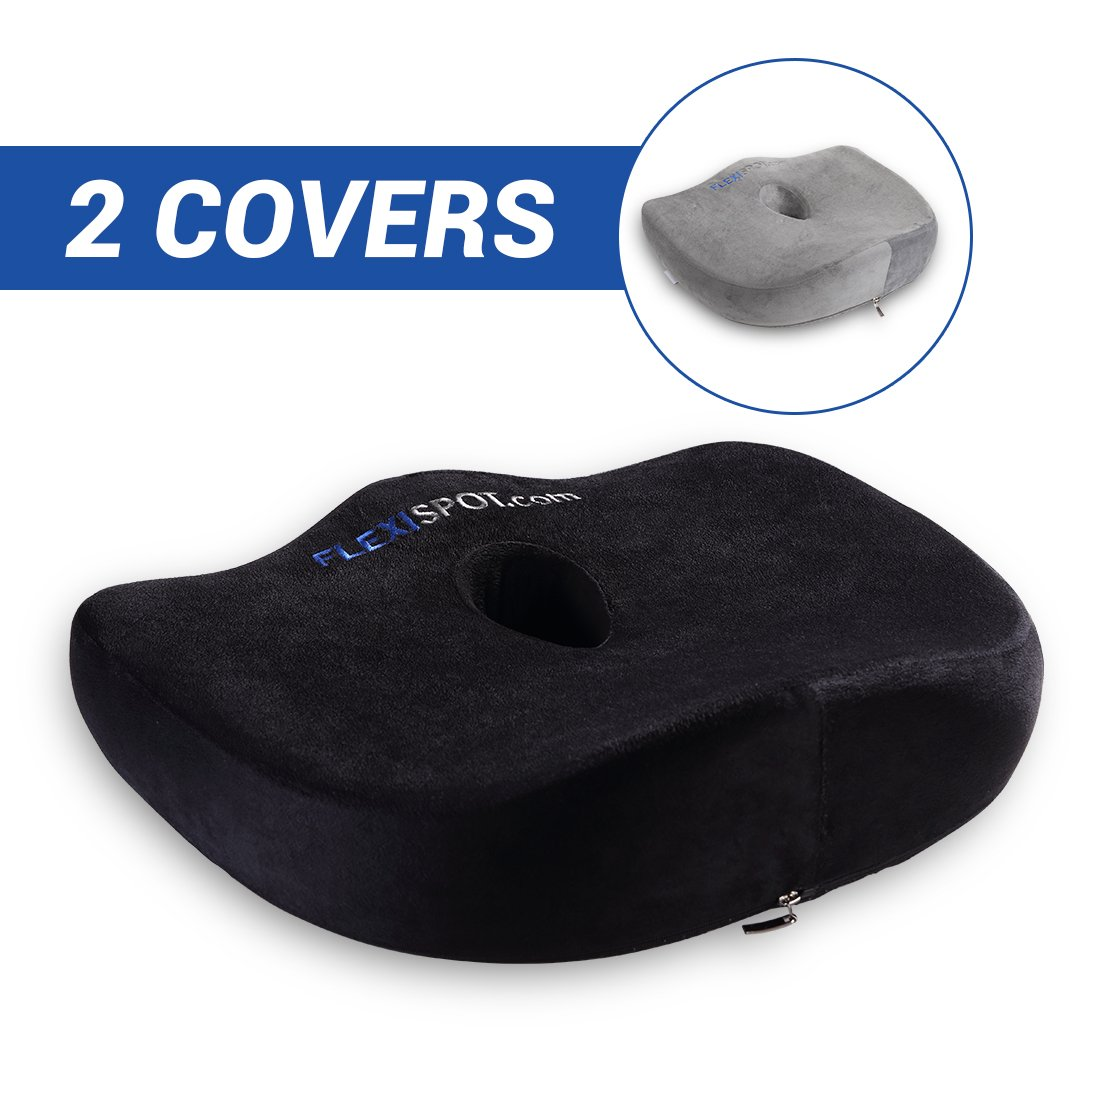 Flexispot 100% Pure Memory Foam Luxury Comfort Coccyx Seat Cushion Mat Ergonomic Orthopedic Design to Relieve Back, Sciatica and Tailbone Pain for Office Home Car Chair Wheelchair Use